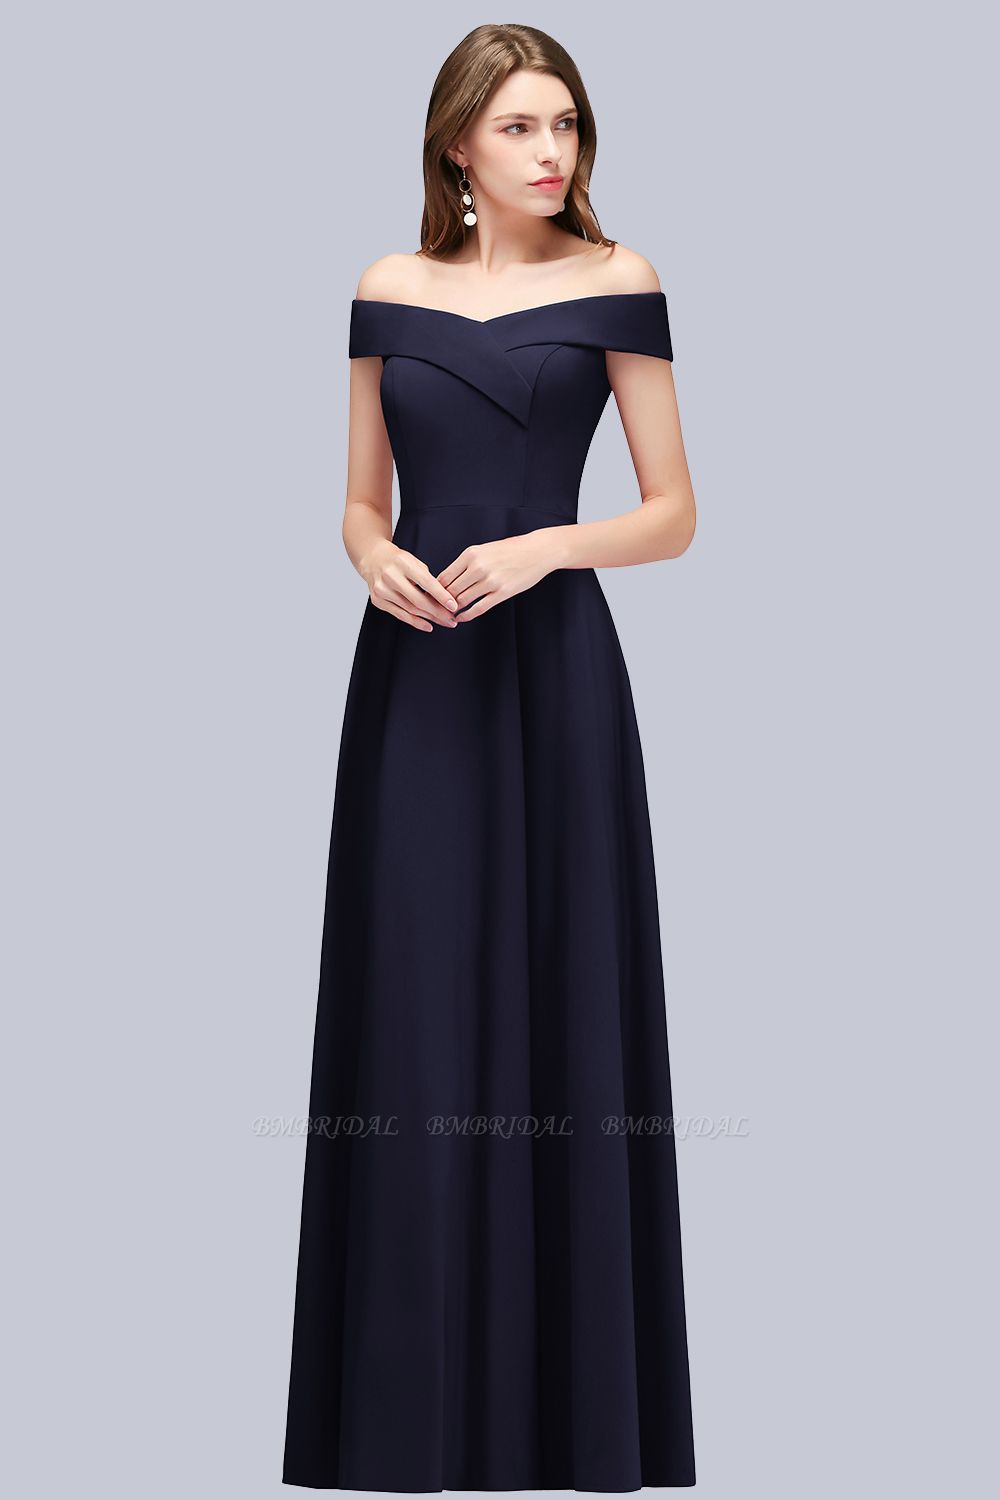 Popular Off-the-Shoulder Ruffle Navy Bridesmaid Dresses Online